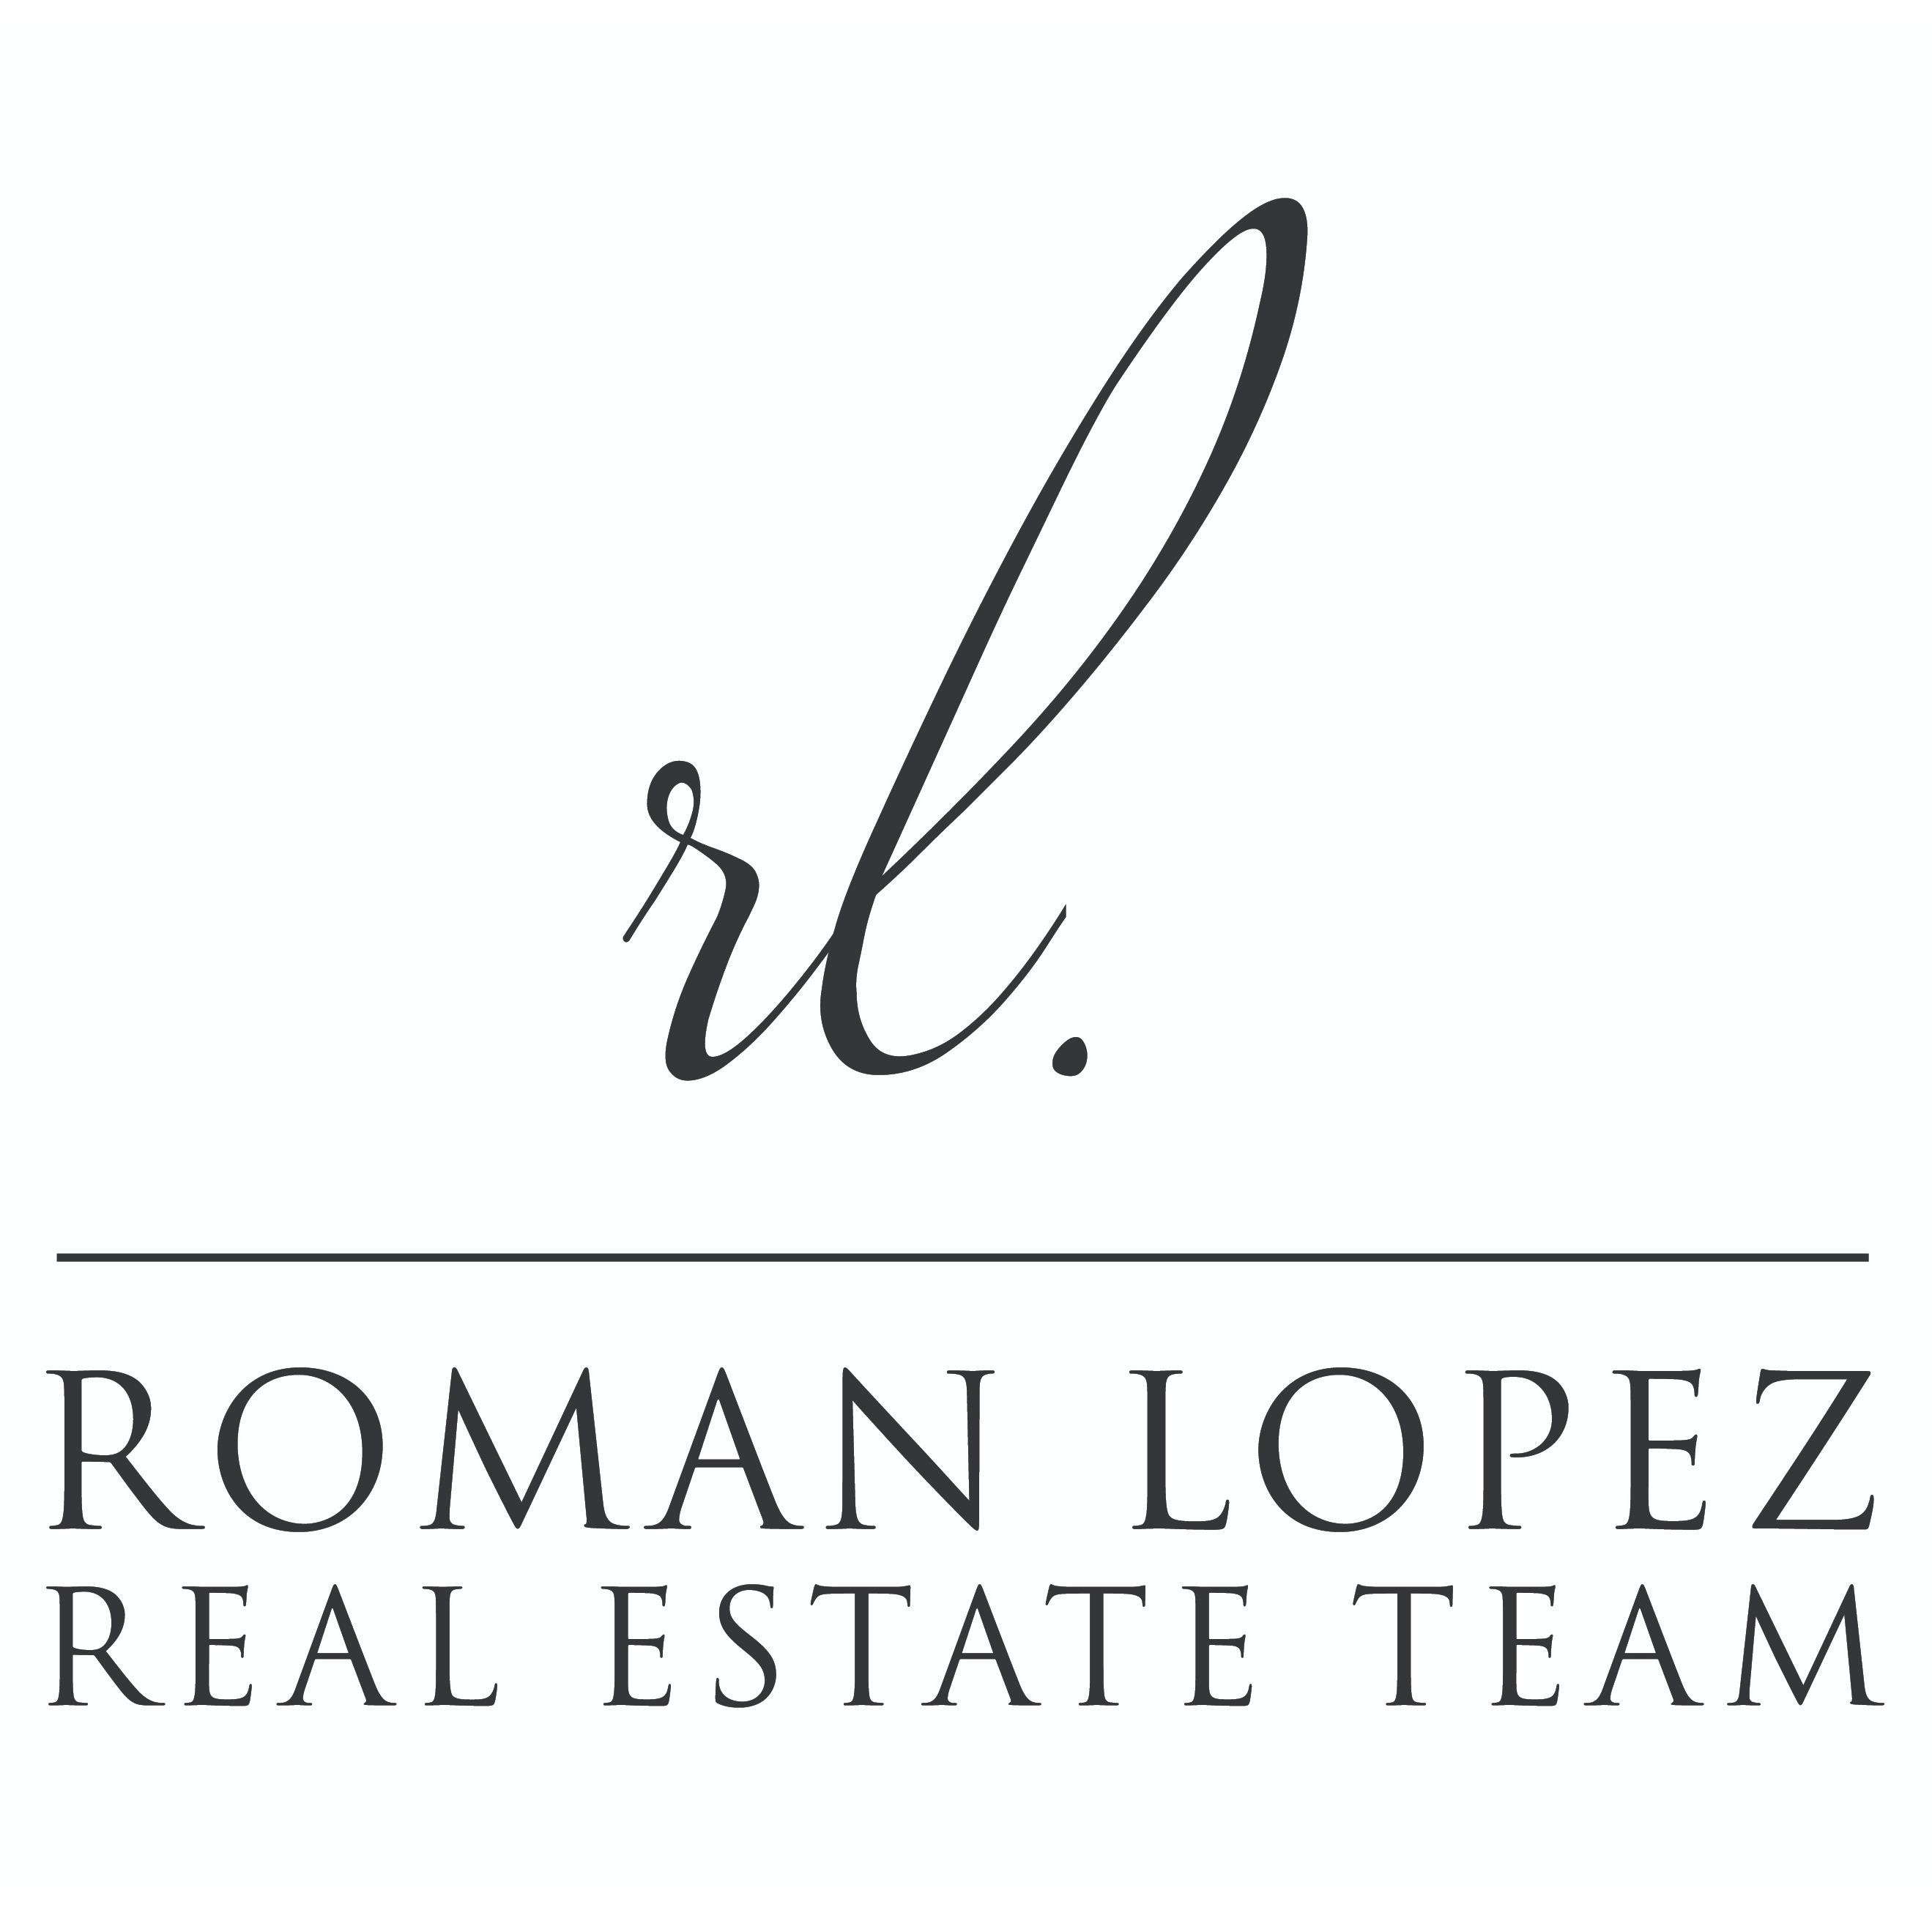 The Roman Lopez Real Estate Team